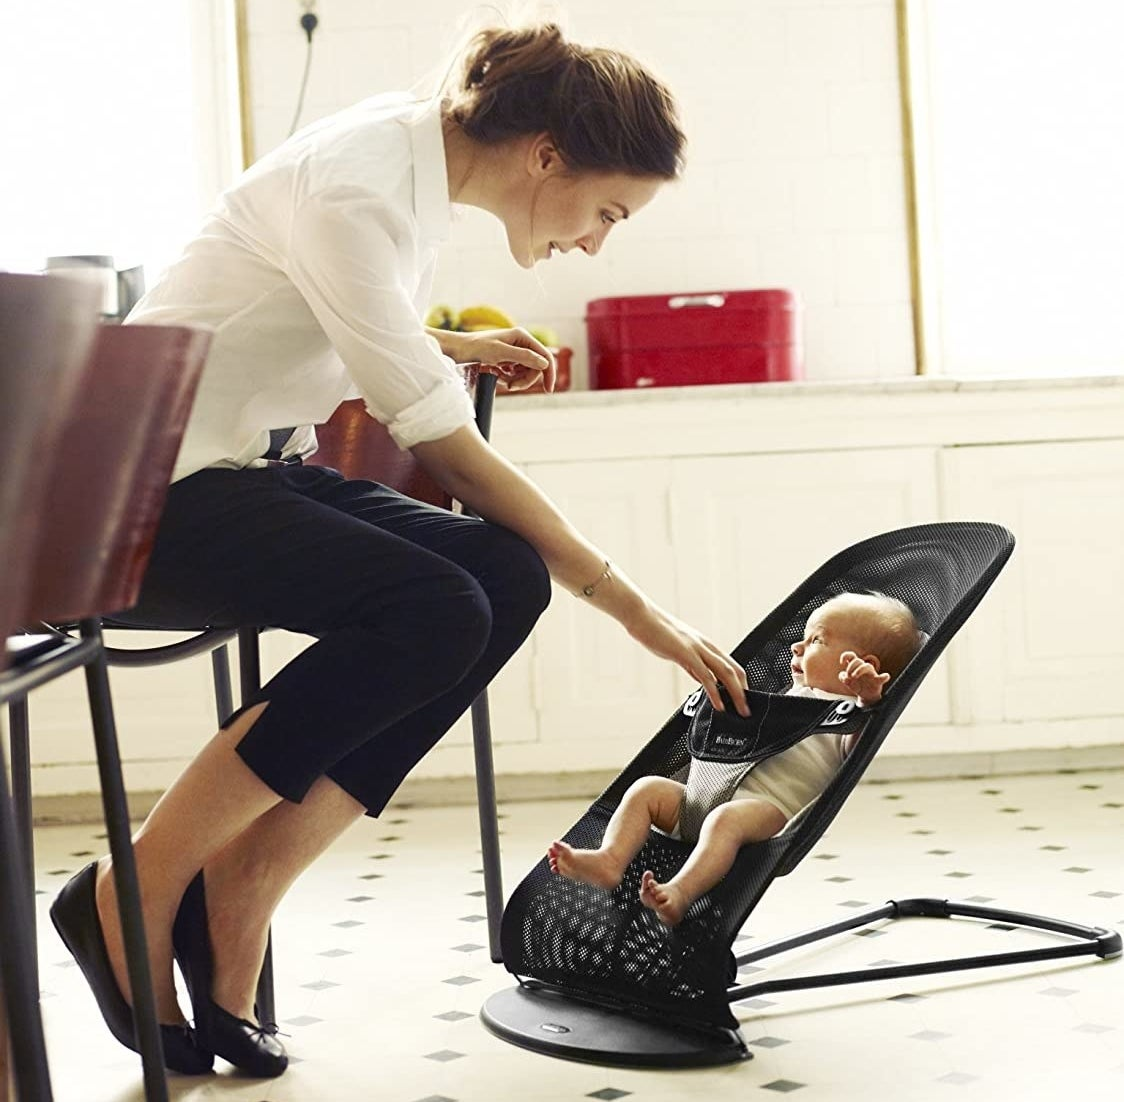 A person sitting on a chair and looking at their baby The baby is sitting upright in a mesh lounge seat on the floor